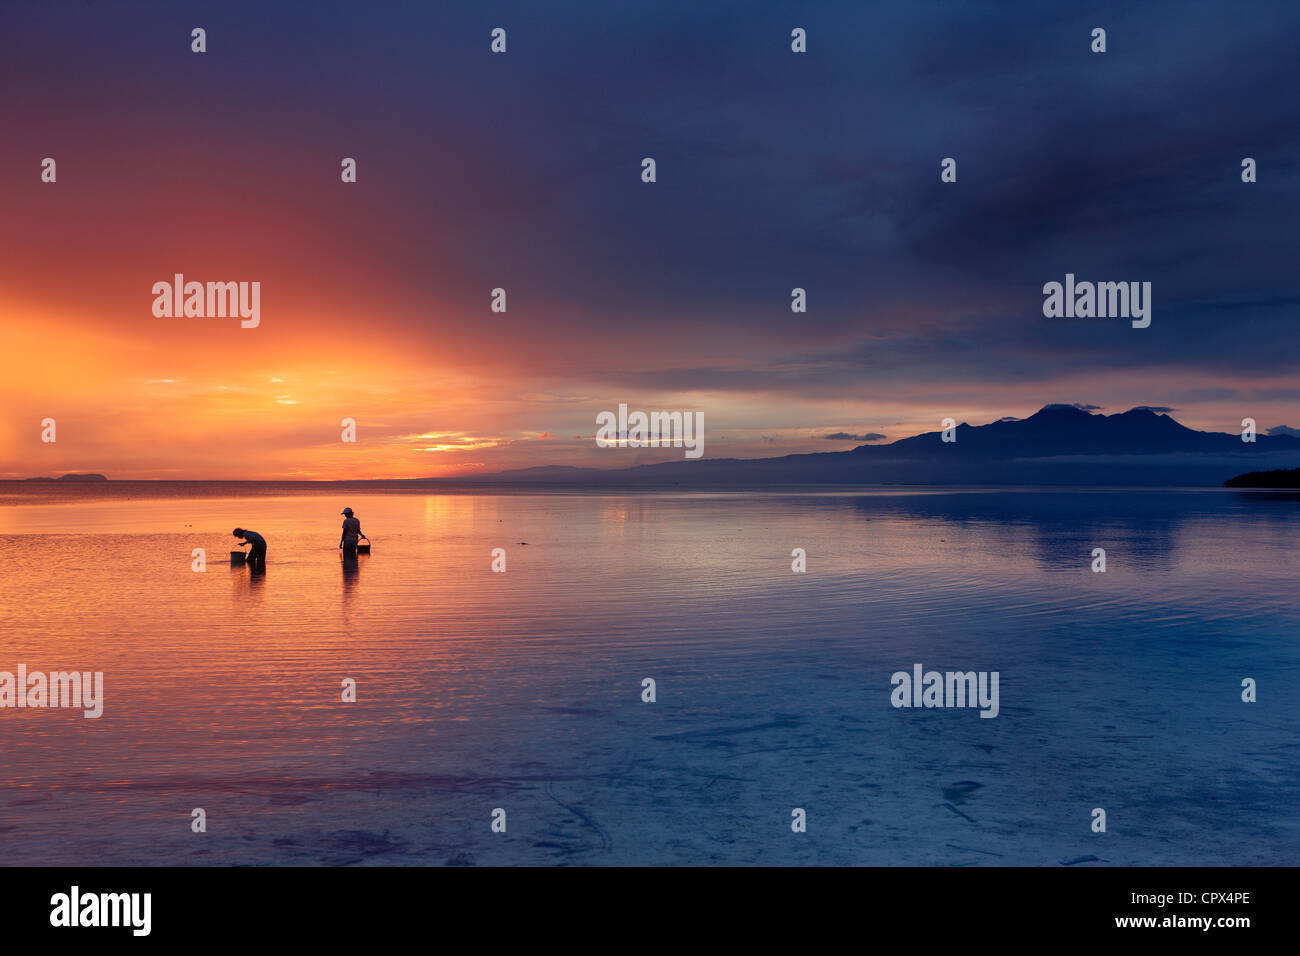 women collecting shells at dusk, Siquijor, The Visayas, Philippines - Stock Image